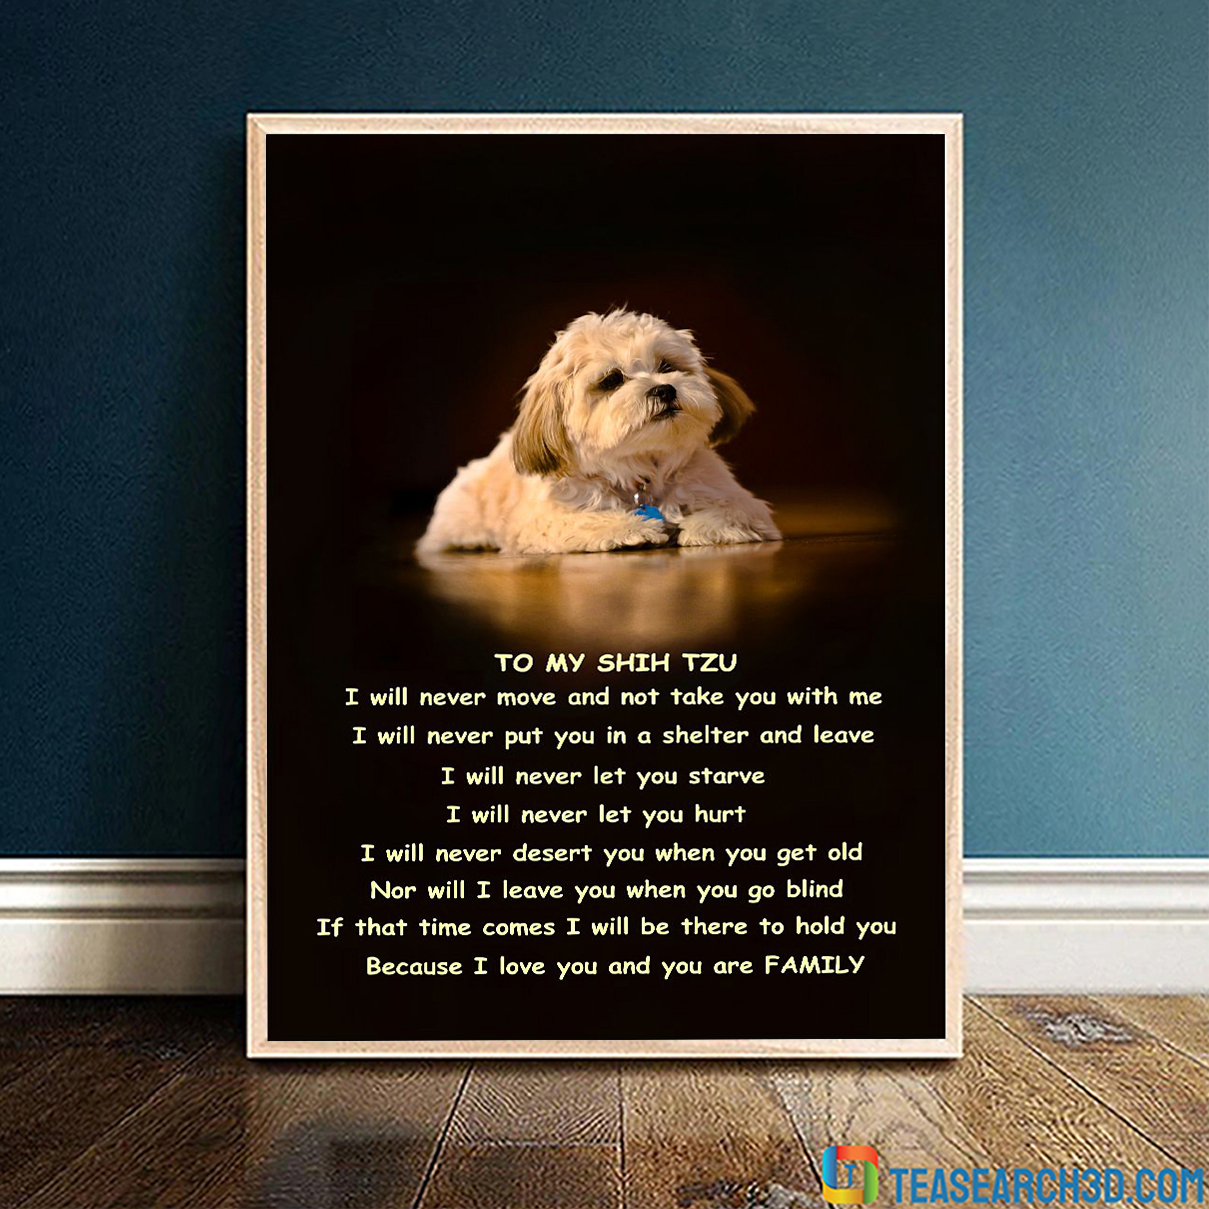 Family to my shih tzu poster A4